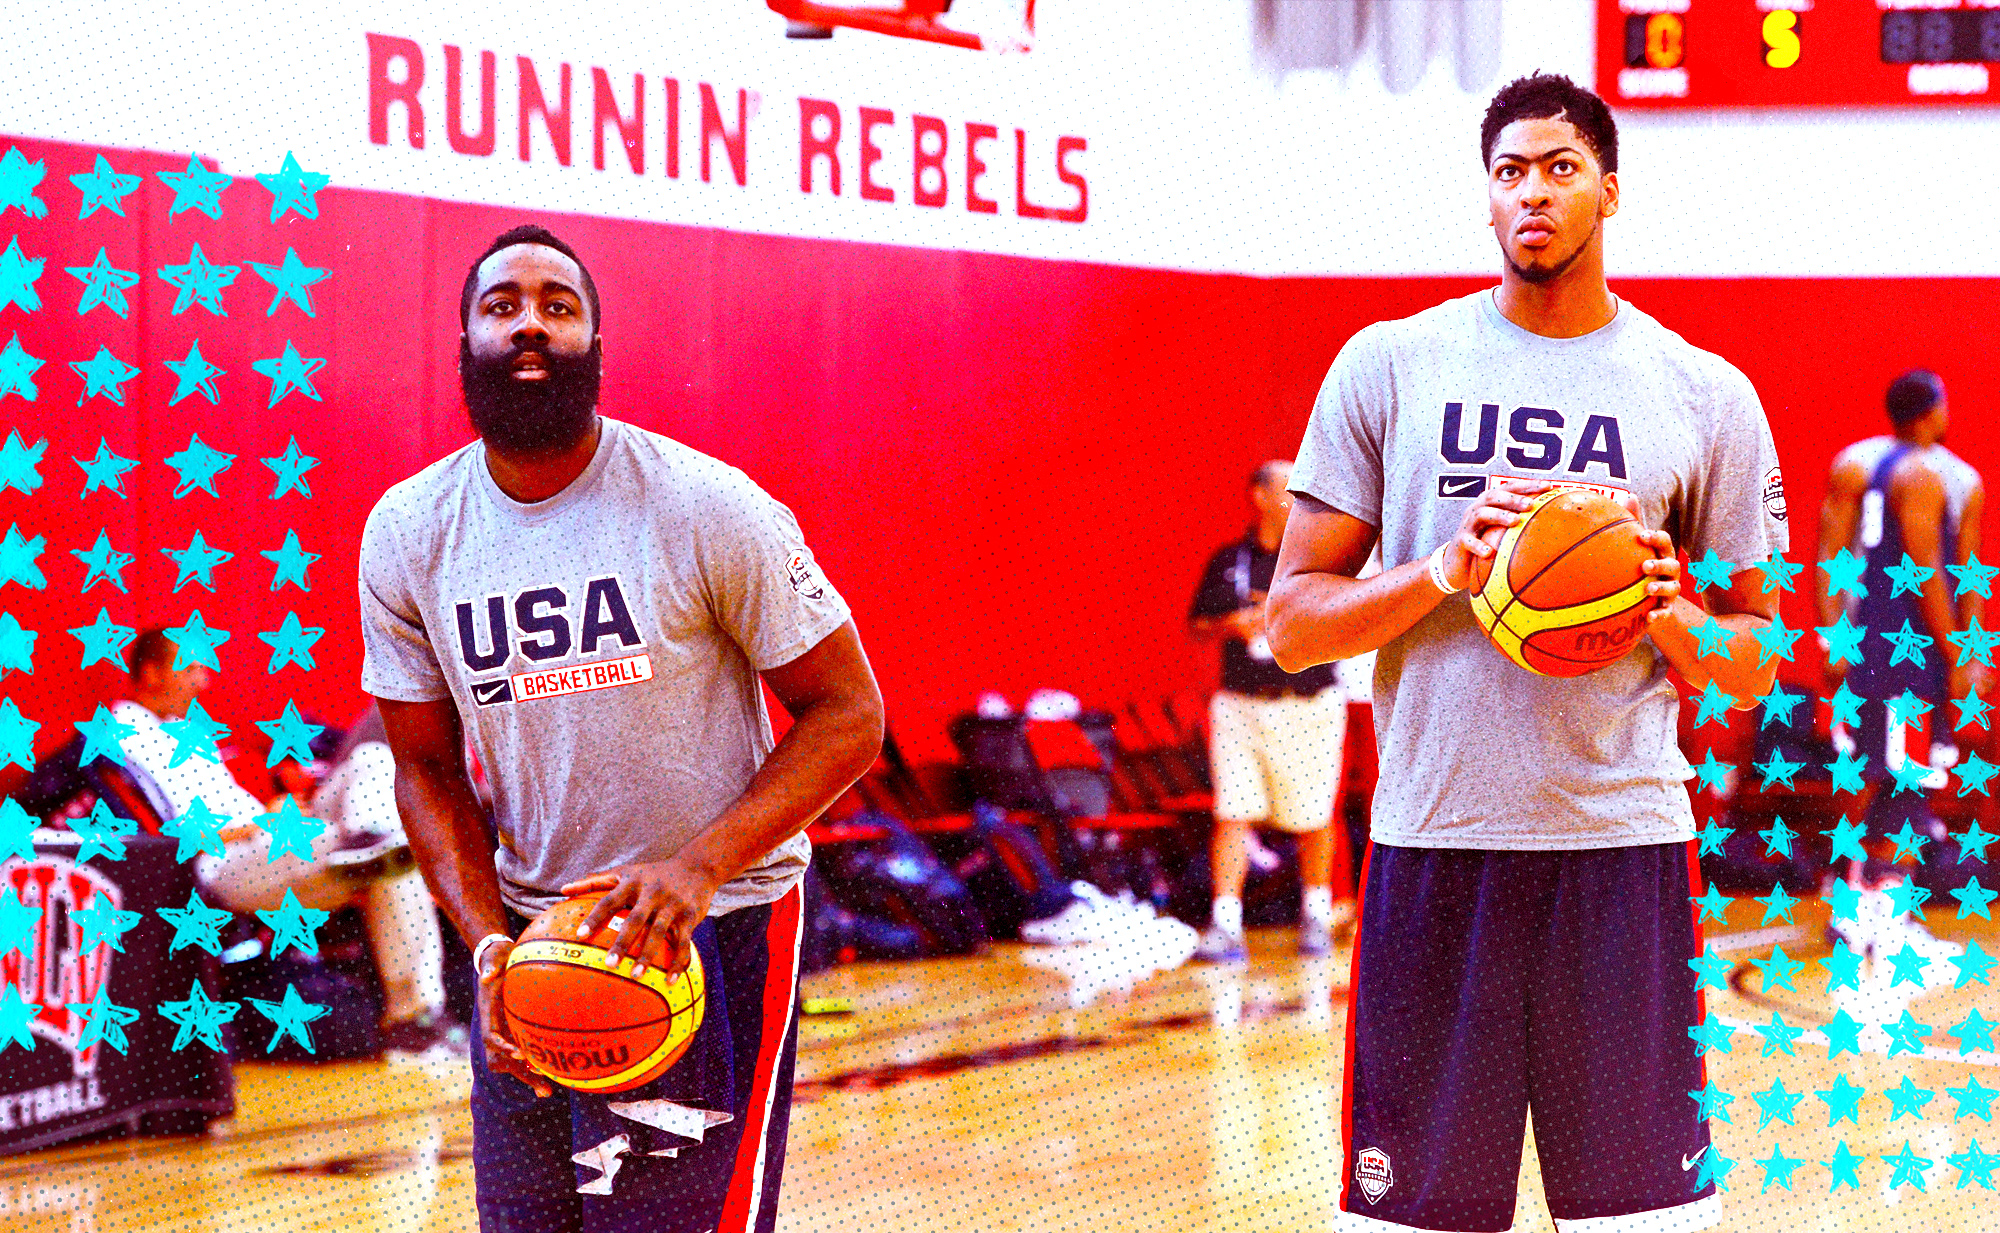 Why are American NBA stars skipping the FIBA World Cup?